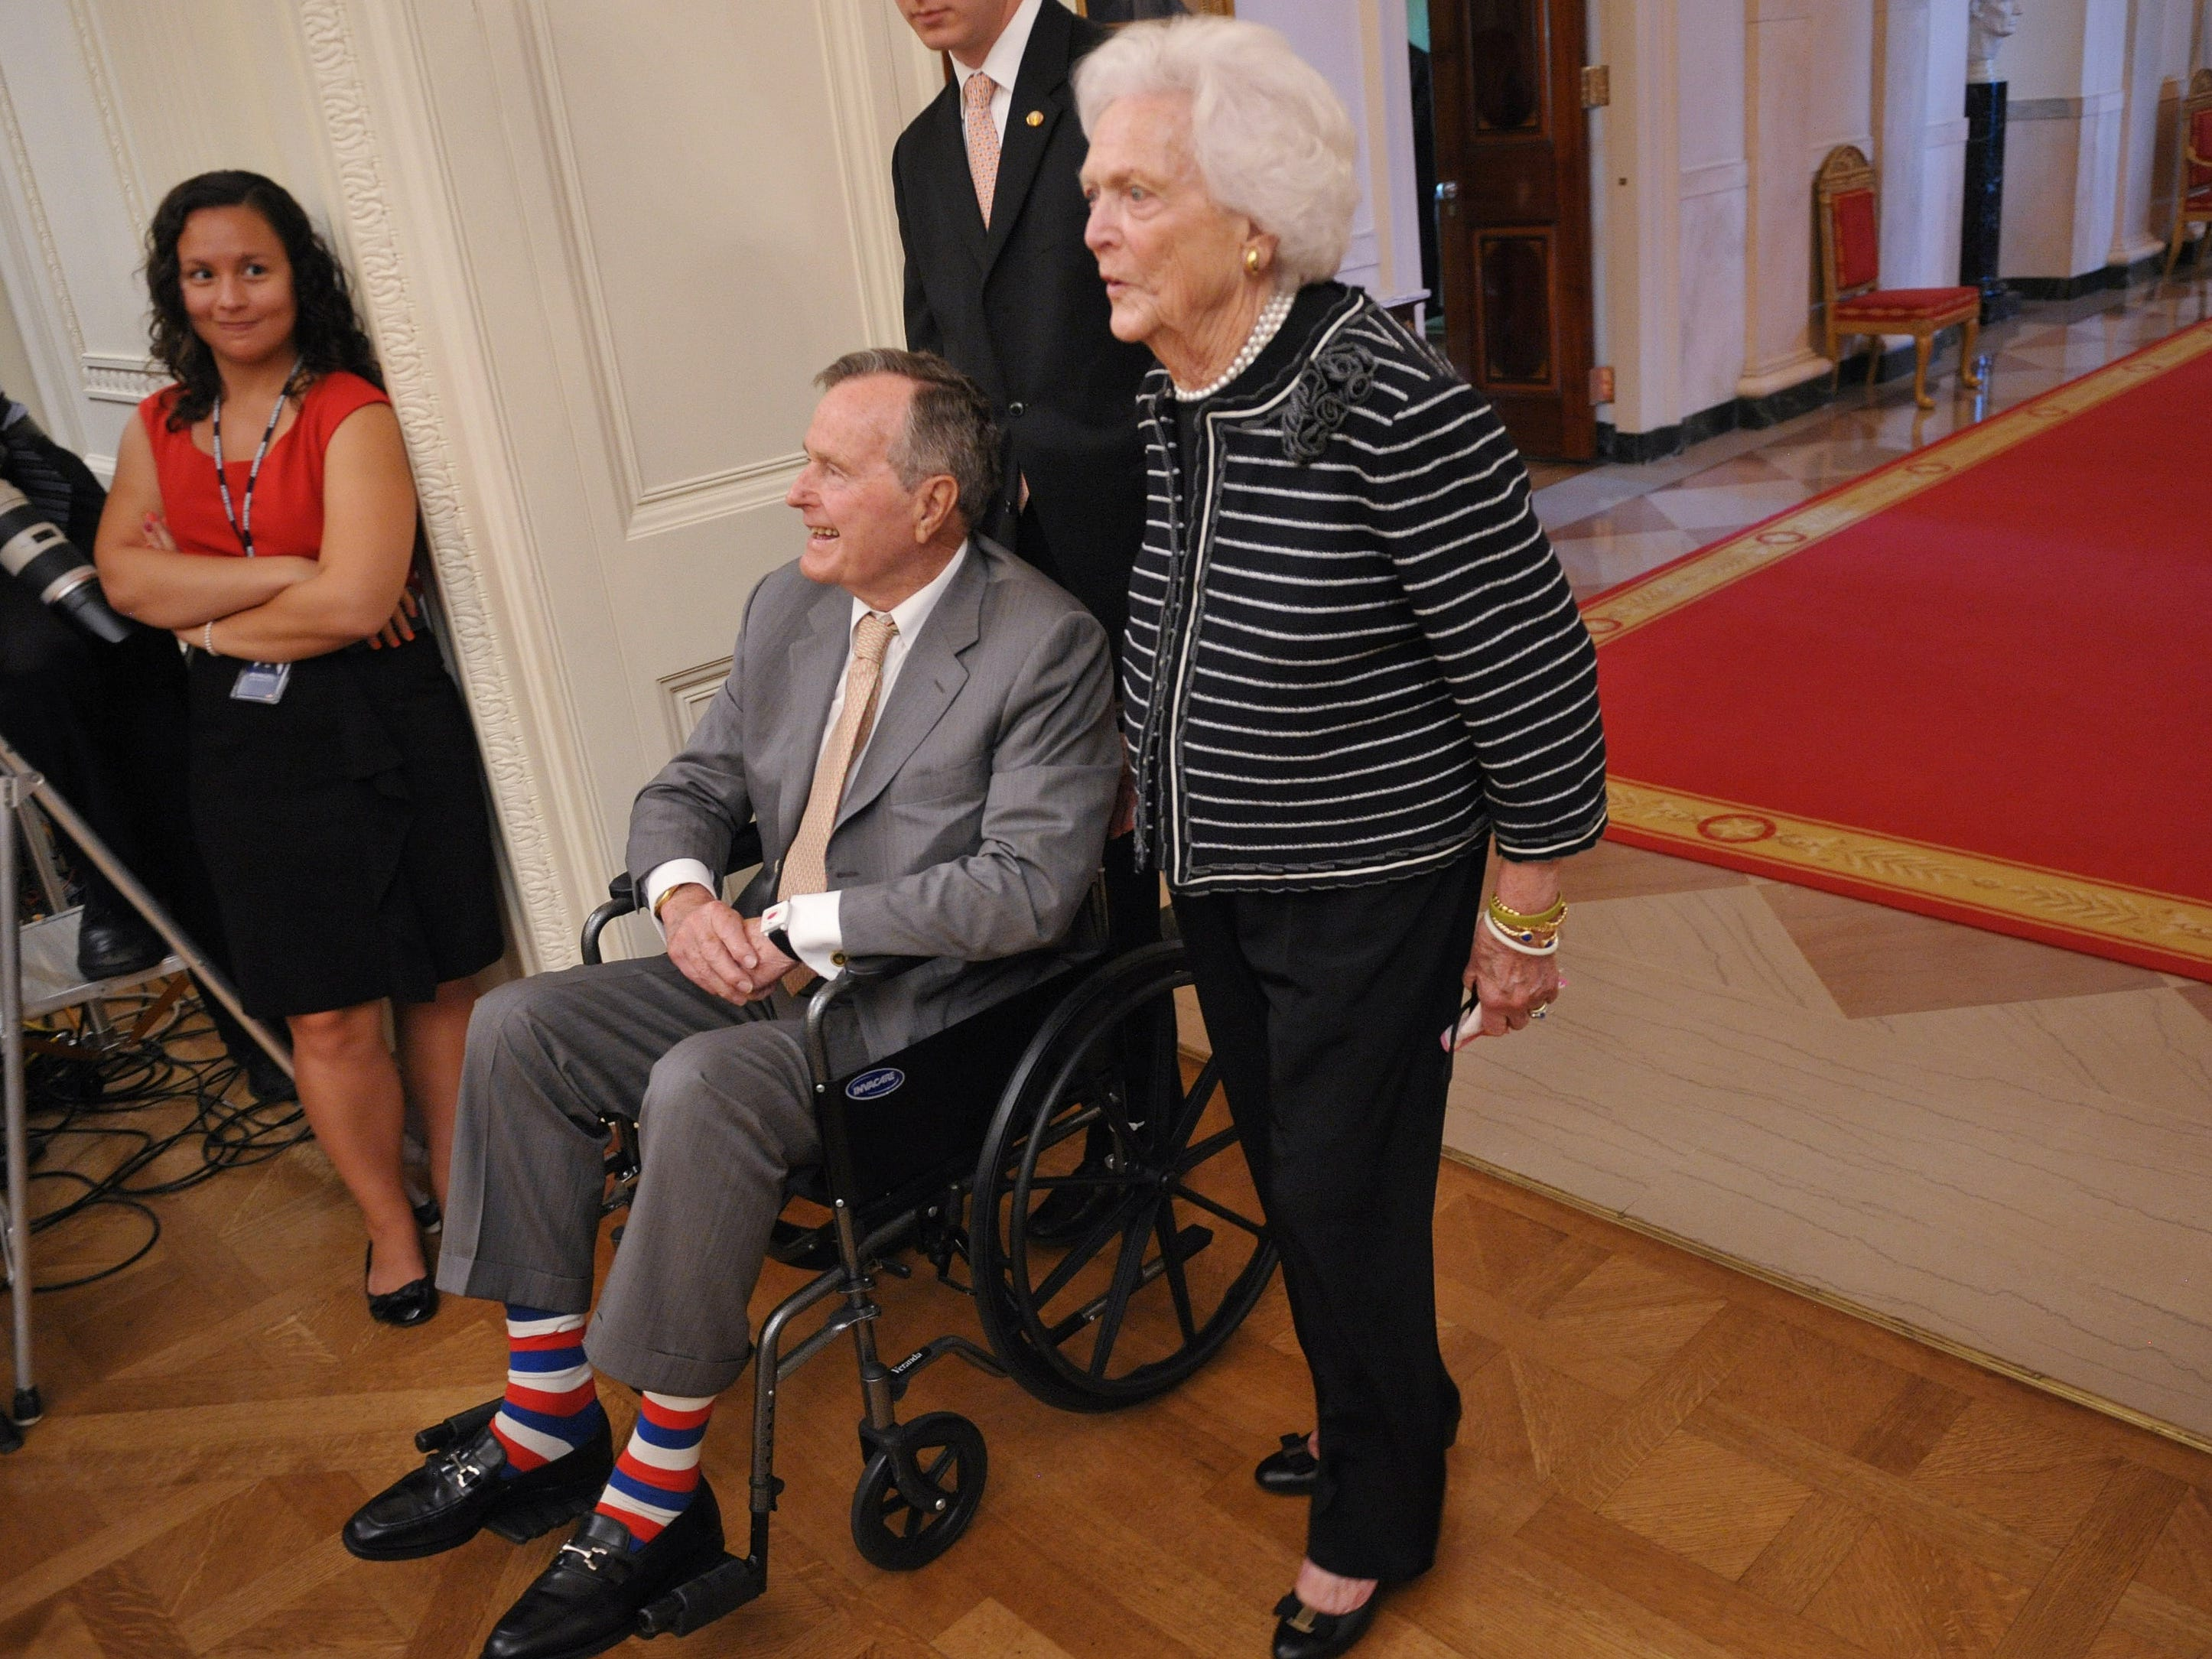 US President George H.W. Bush and his wife Barbara arrive for the portrait unveiling of former US president George W. Bush and his wife Laura Bush  May 31, 2012 in the East Room of the White House in Washington, DC.  AFP PHOTO/Mandel NGAN (Photo by MANDEL NGAN / AFP)        (Photo credit should read MANDEL NGAN/AFP/Getty Images)